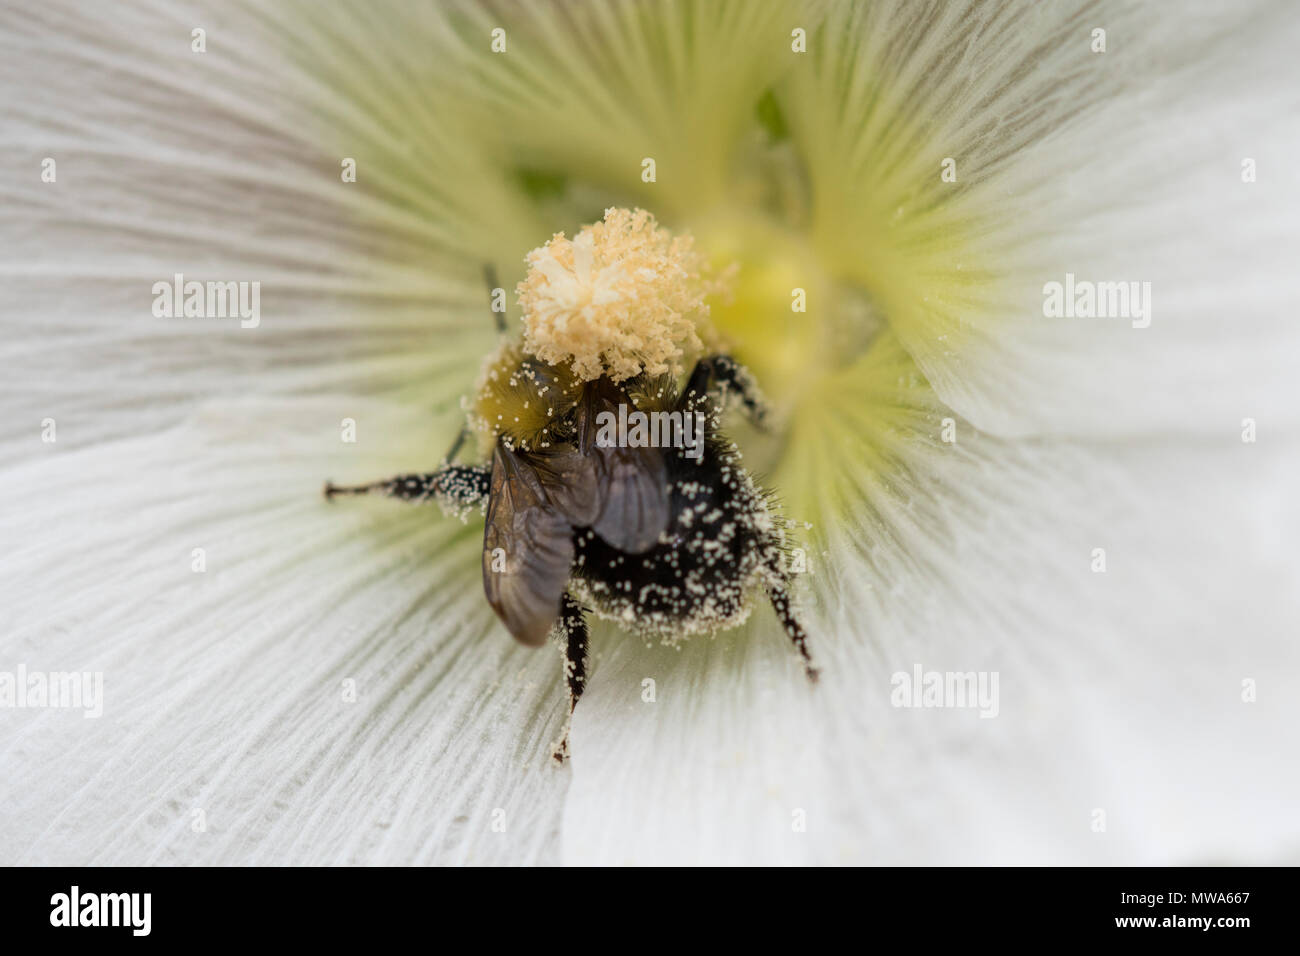 Bumblebeee foraging for nectar and pollen in garden flower, Greater Sudbury, Ontario, Canada - Stock Image